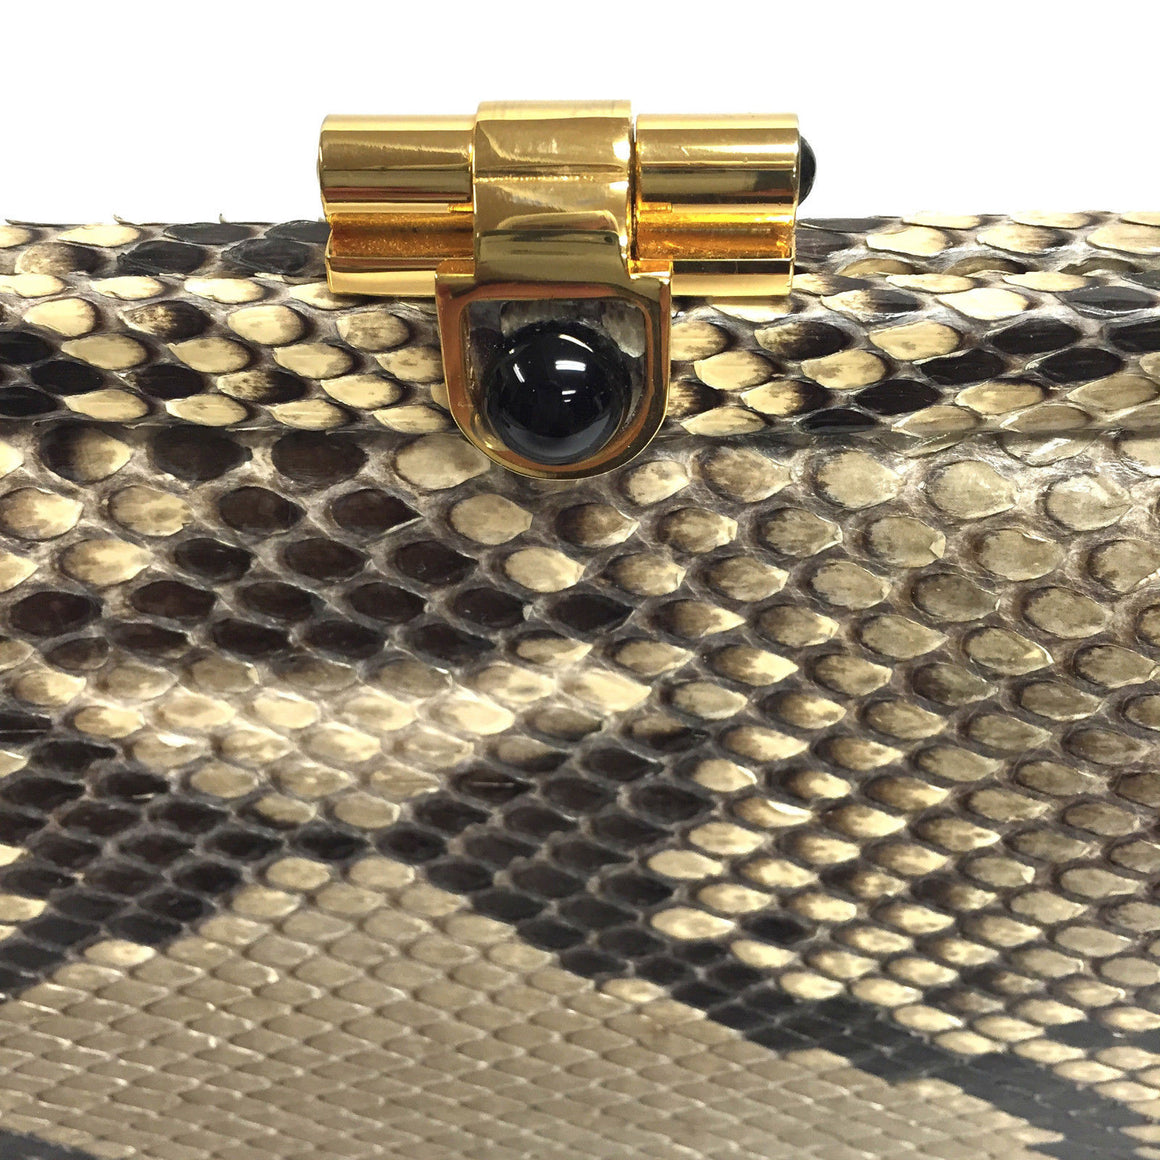 bisbiz.com JUDITH LEIBER Vintage Python Skin Self Adjustable Strap Evening Frame Bag - Bis Luxury Resale